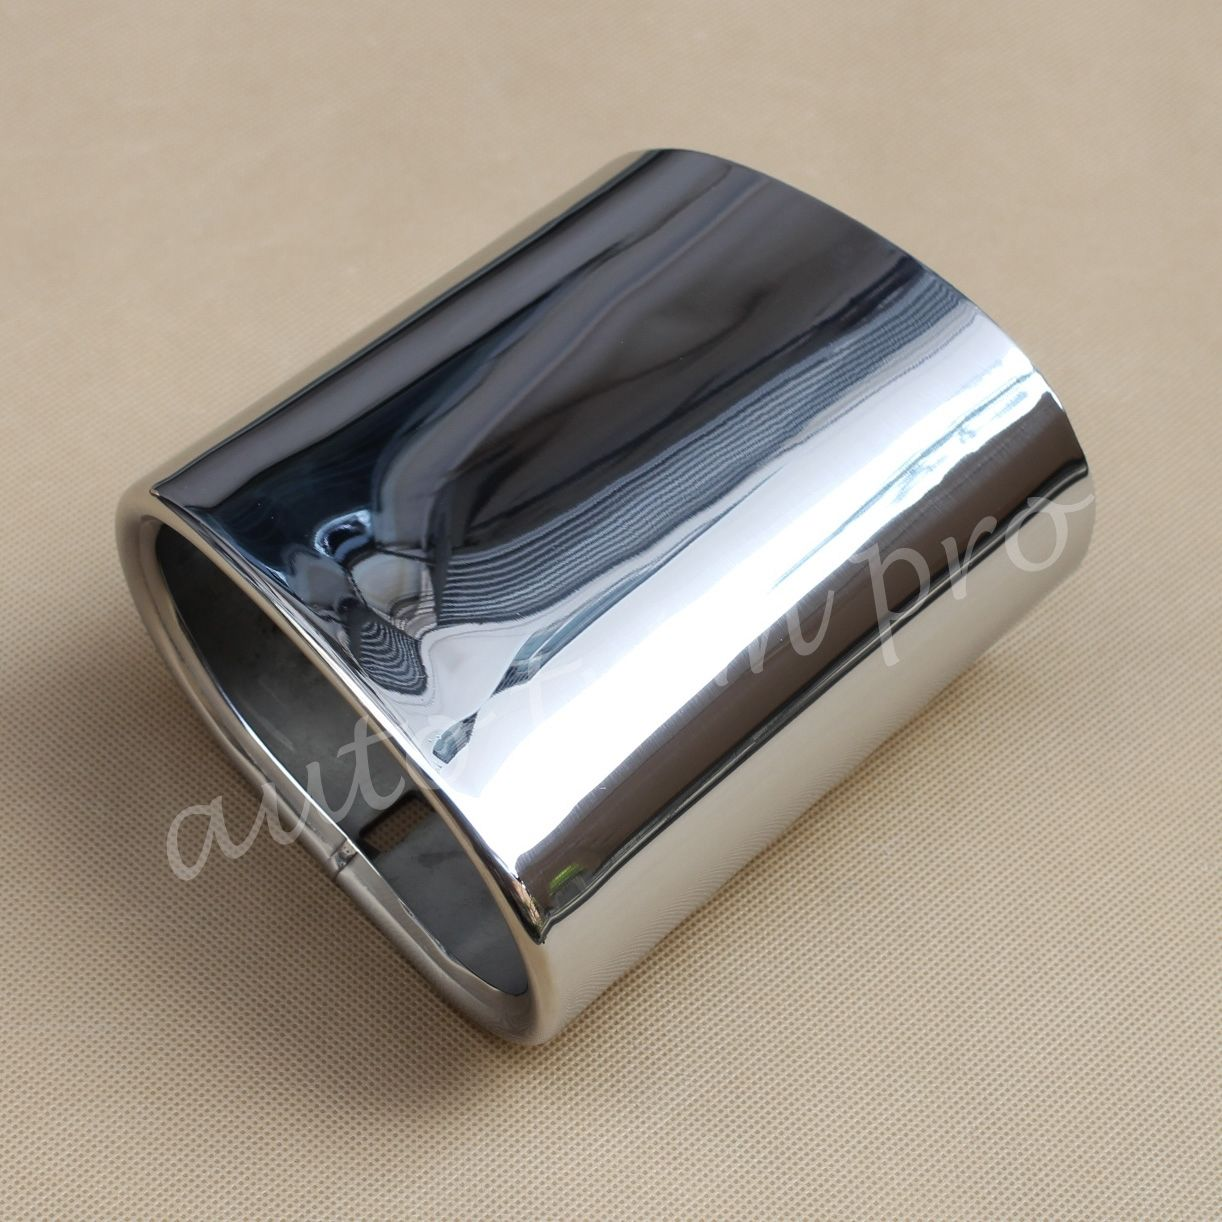 Stainless Steel Car Rear Exhaust Muffler Tailpipe End Trim Fit For BMW X3 SUV xDrive 20i 20d 2011 2012 2013 2014|Mufflers|   - title=